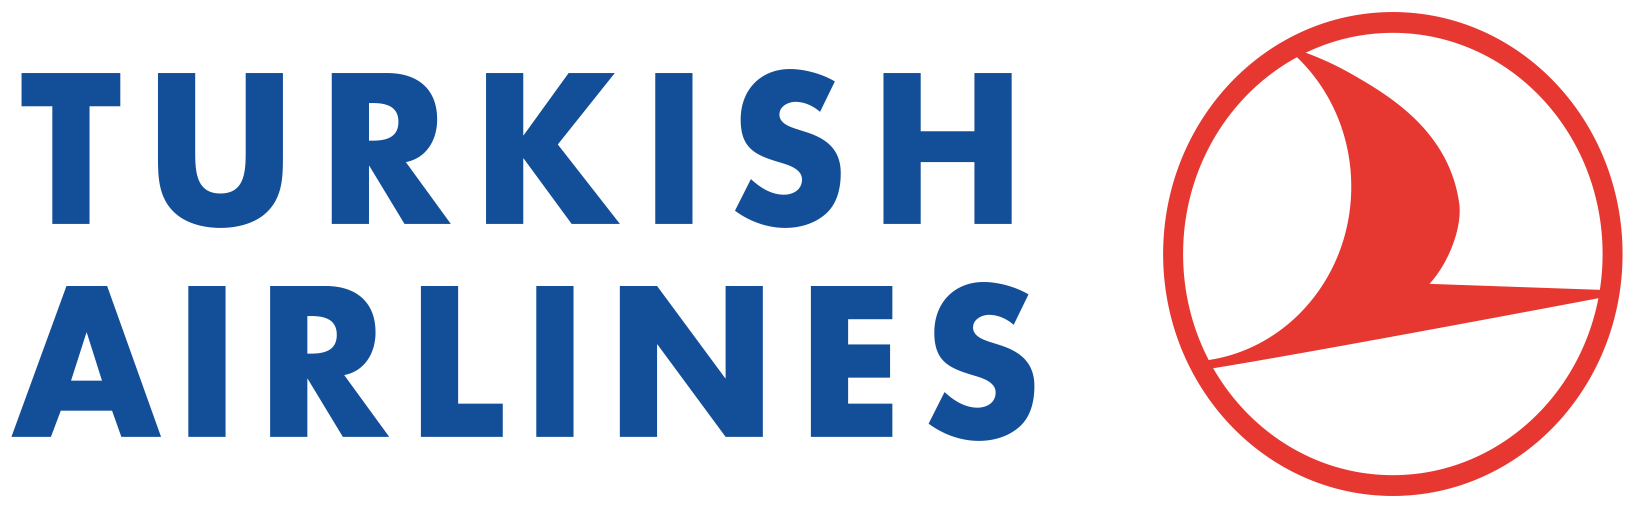 Turkish Airlines_Isologotype